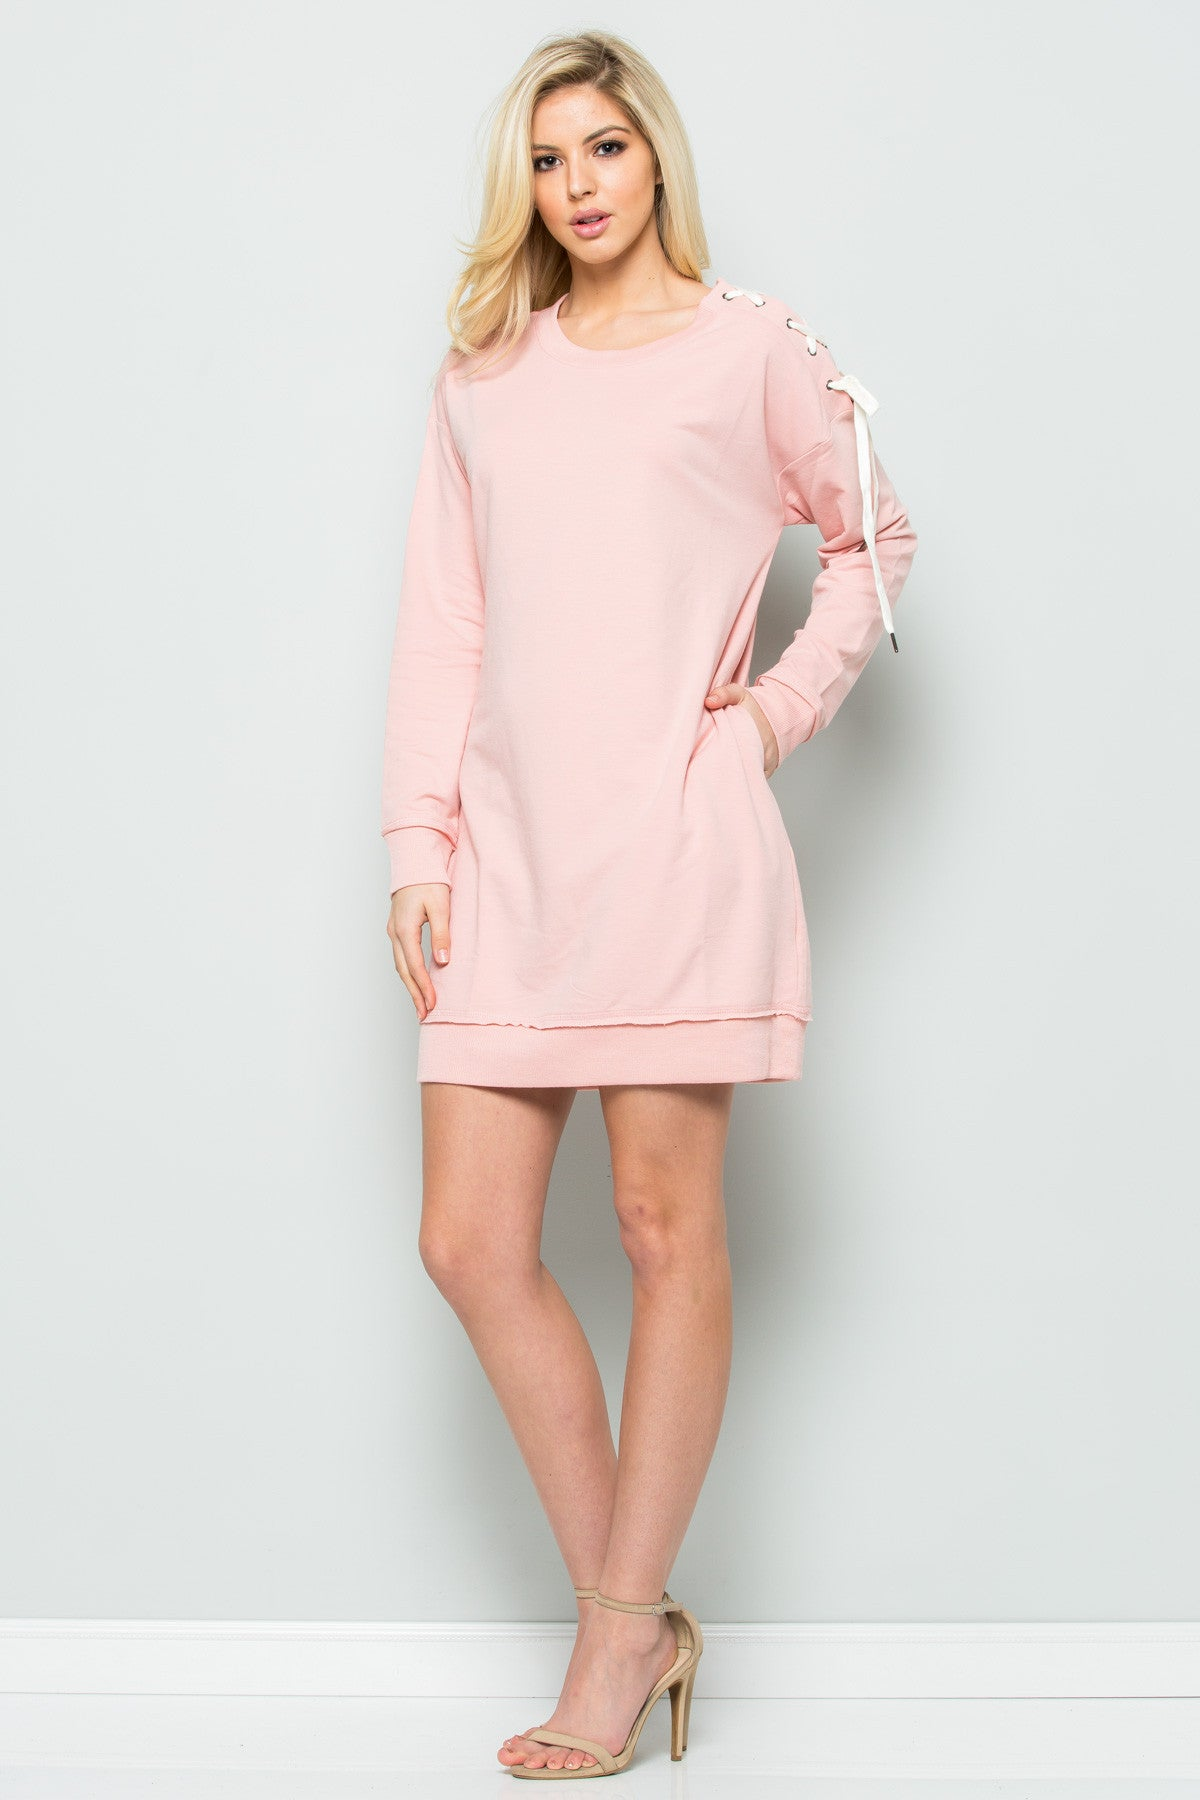 Shoulder Lace Up Sweater Dress in Blush - Dresses - My Yuccie - 5